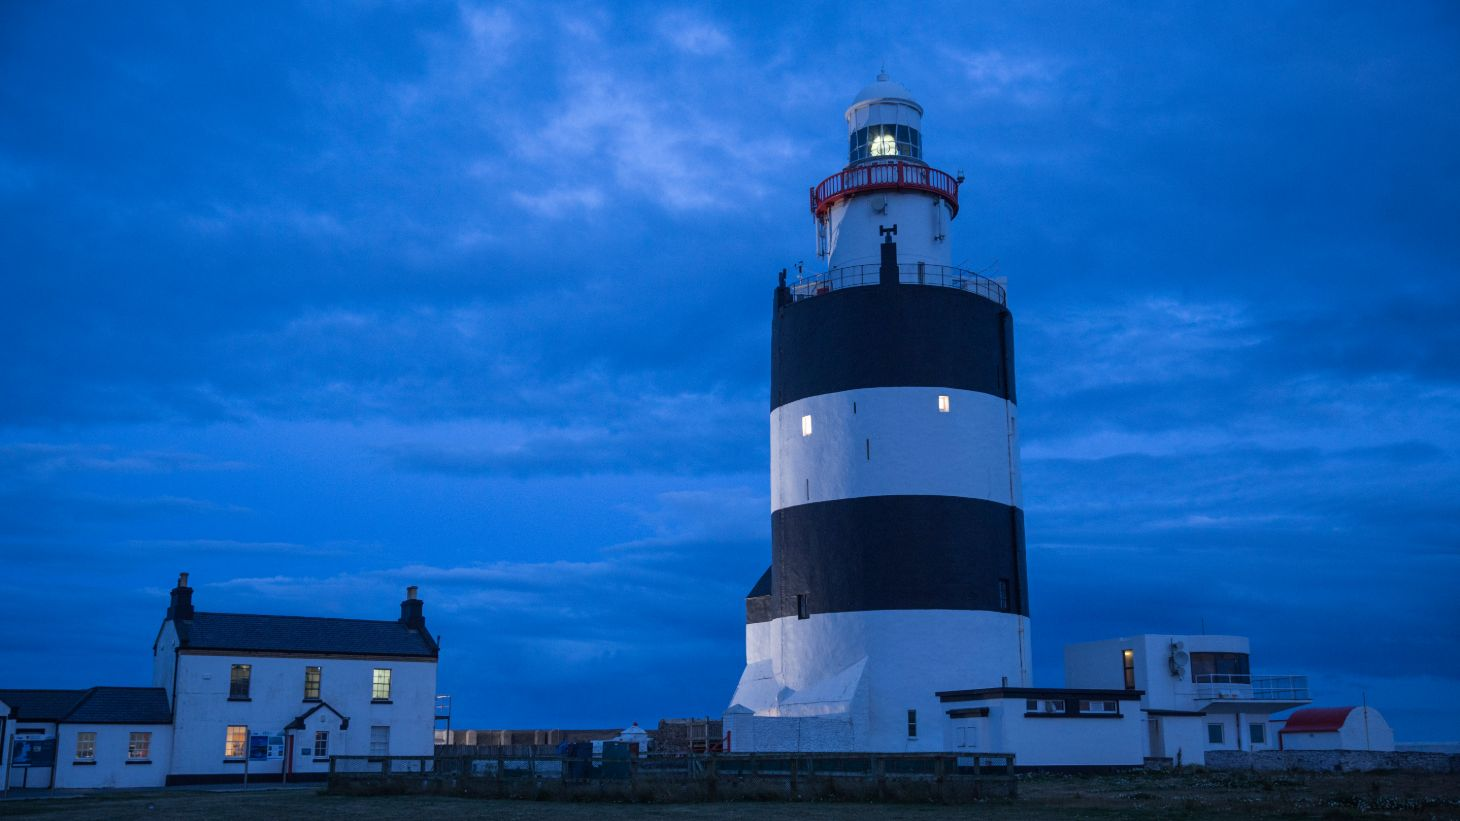 Take a trip to the striking Hook Lighthouse.